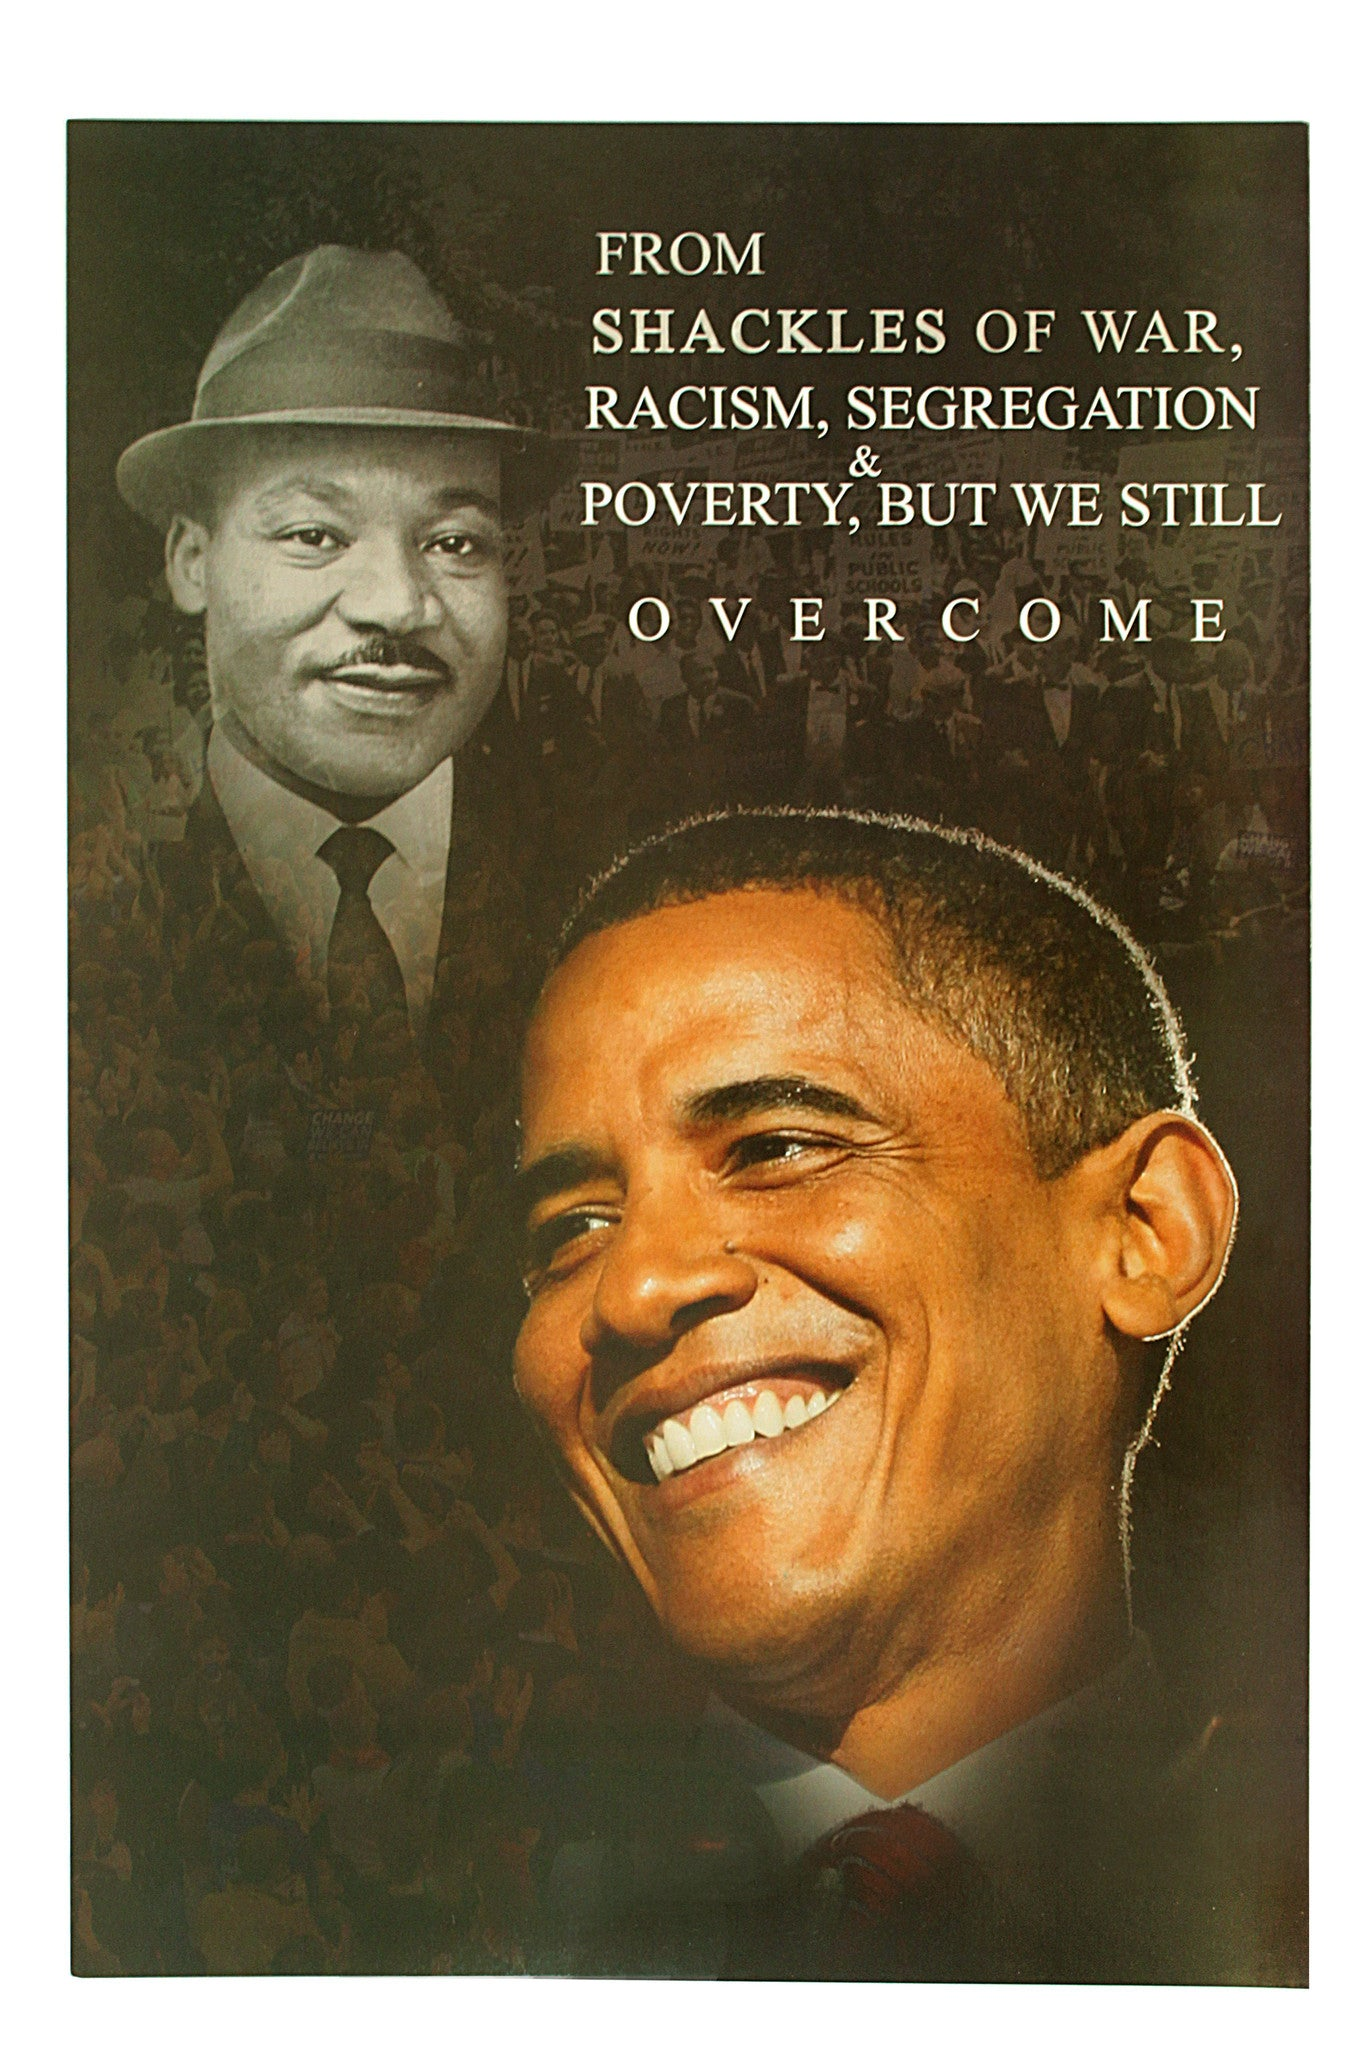 But Still We Overcome: Martin Luther King Jr. and Barack Obama